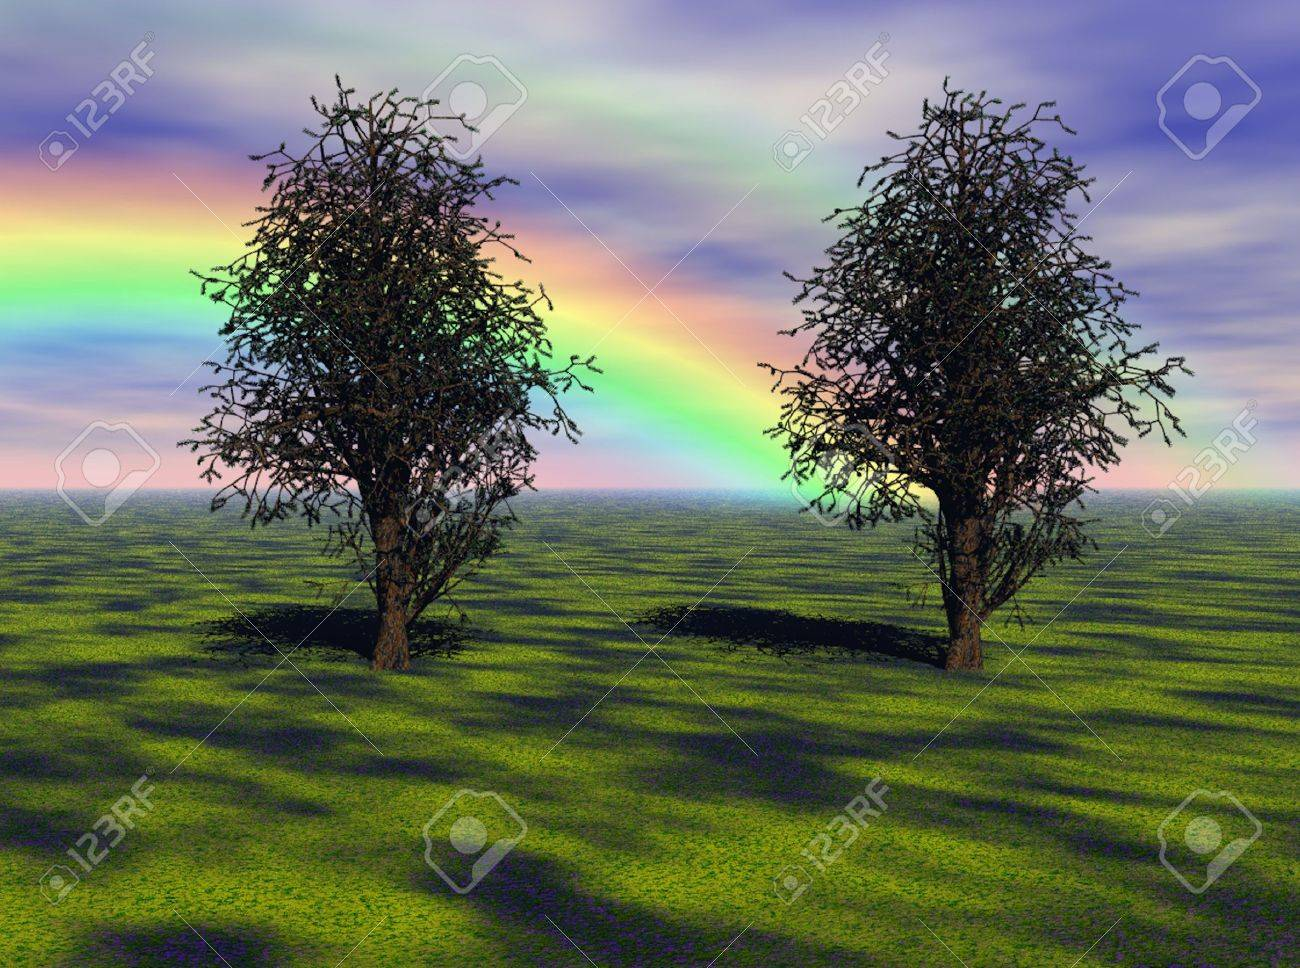 Vibrant rainbow over a meadow and maple trees. Stock Photo - 5036089